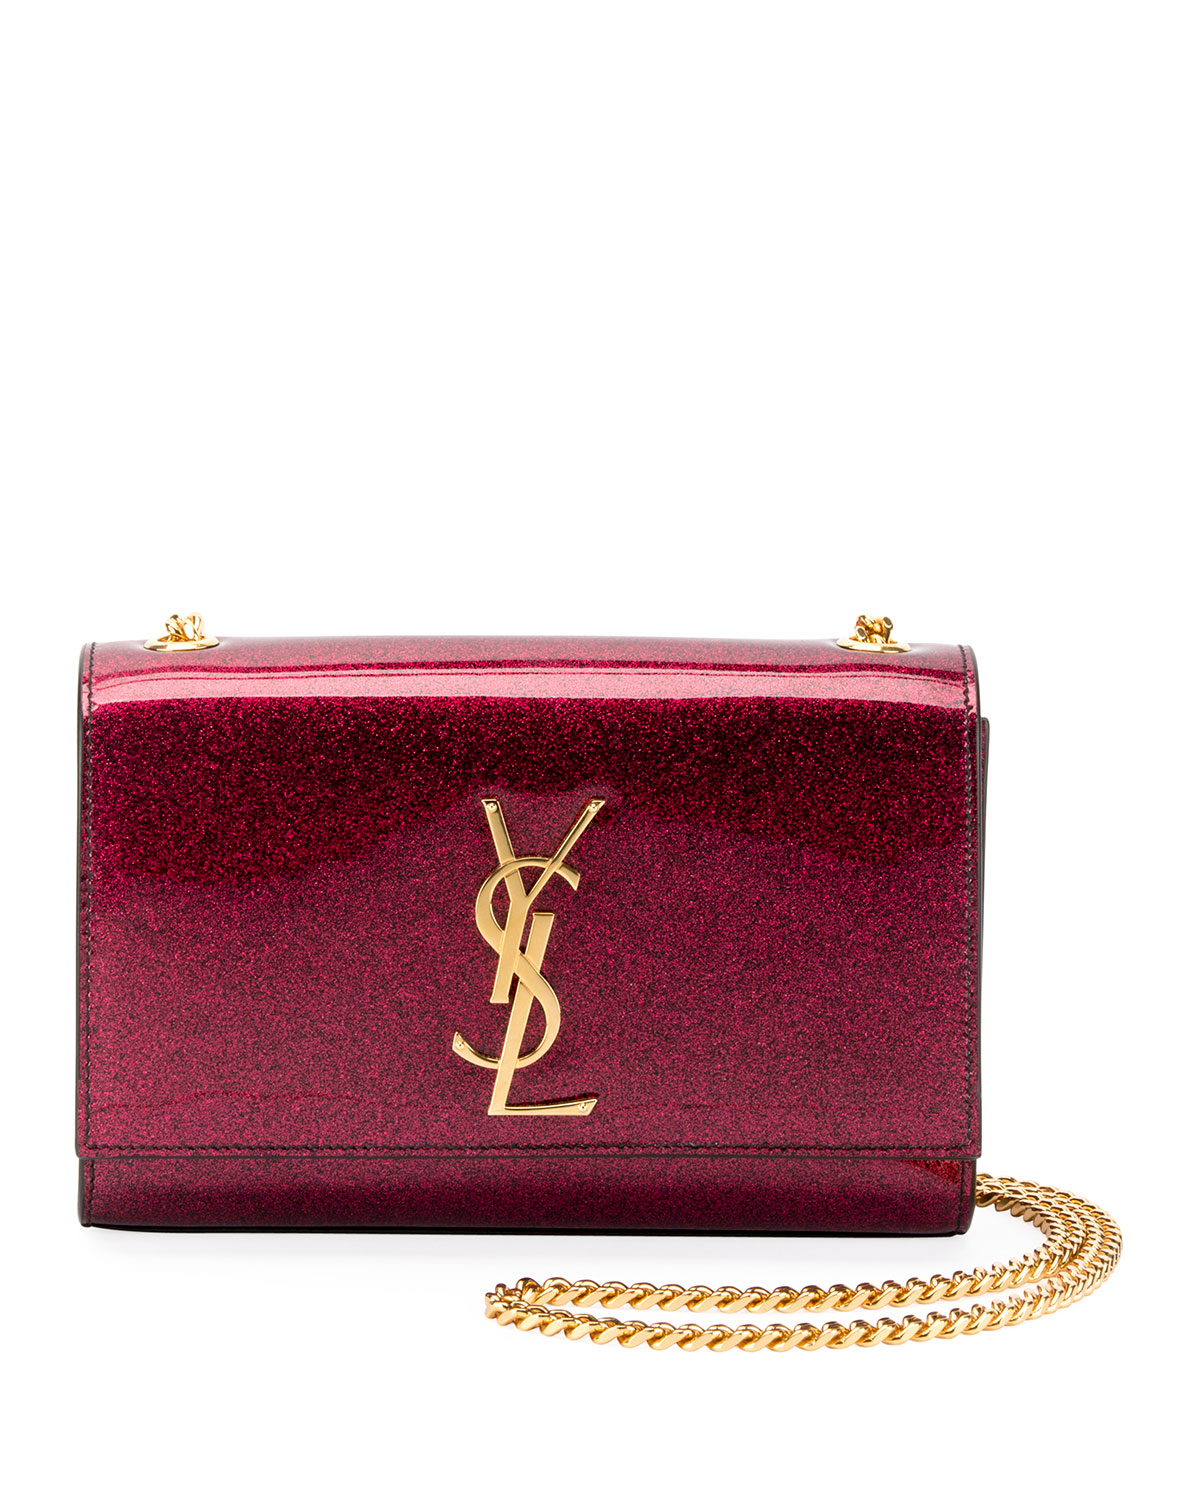 1e61f1b6bceca Saint Laurent Kate Monogram YSL Small Glitter Patent Crossbody Bag ...